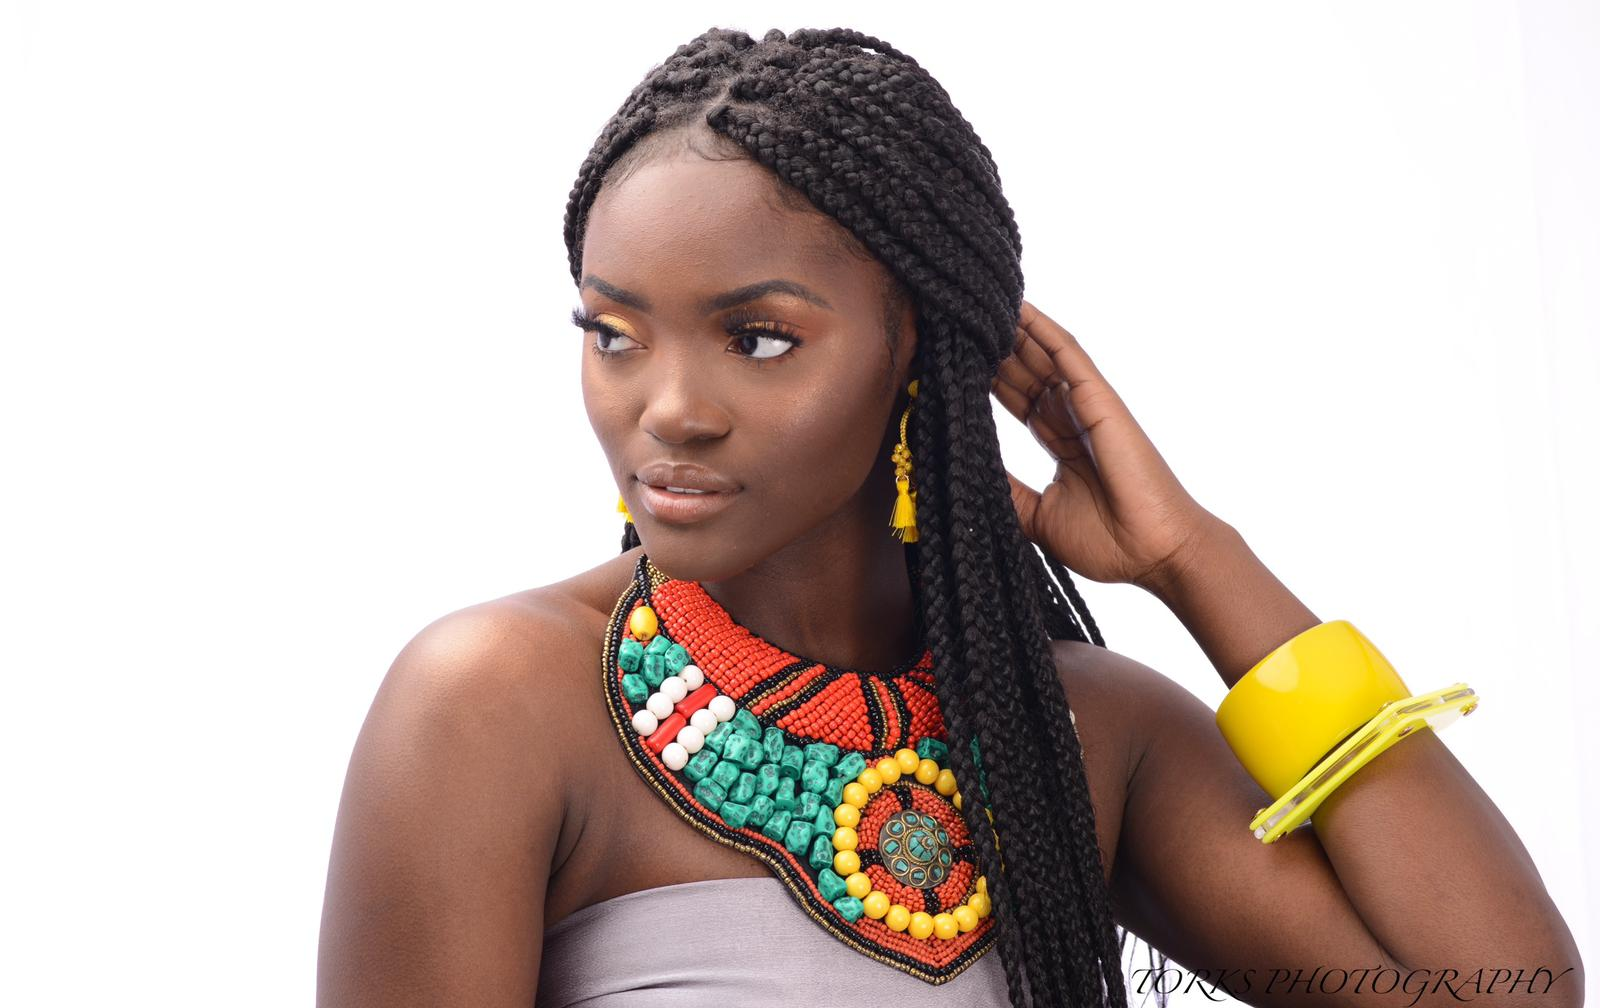 african girl with turquoise collar necklace and earrings